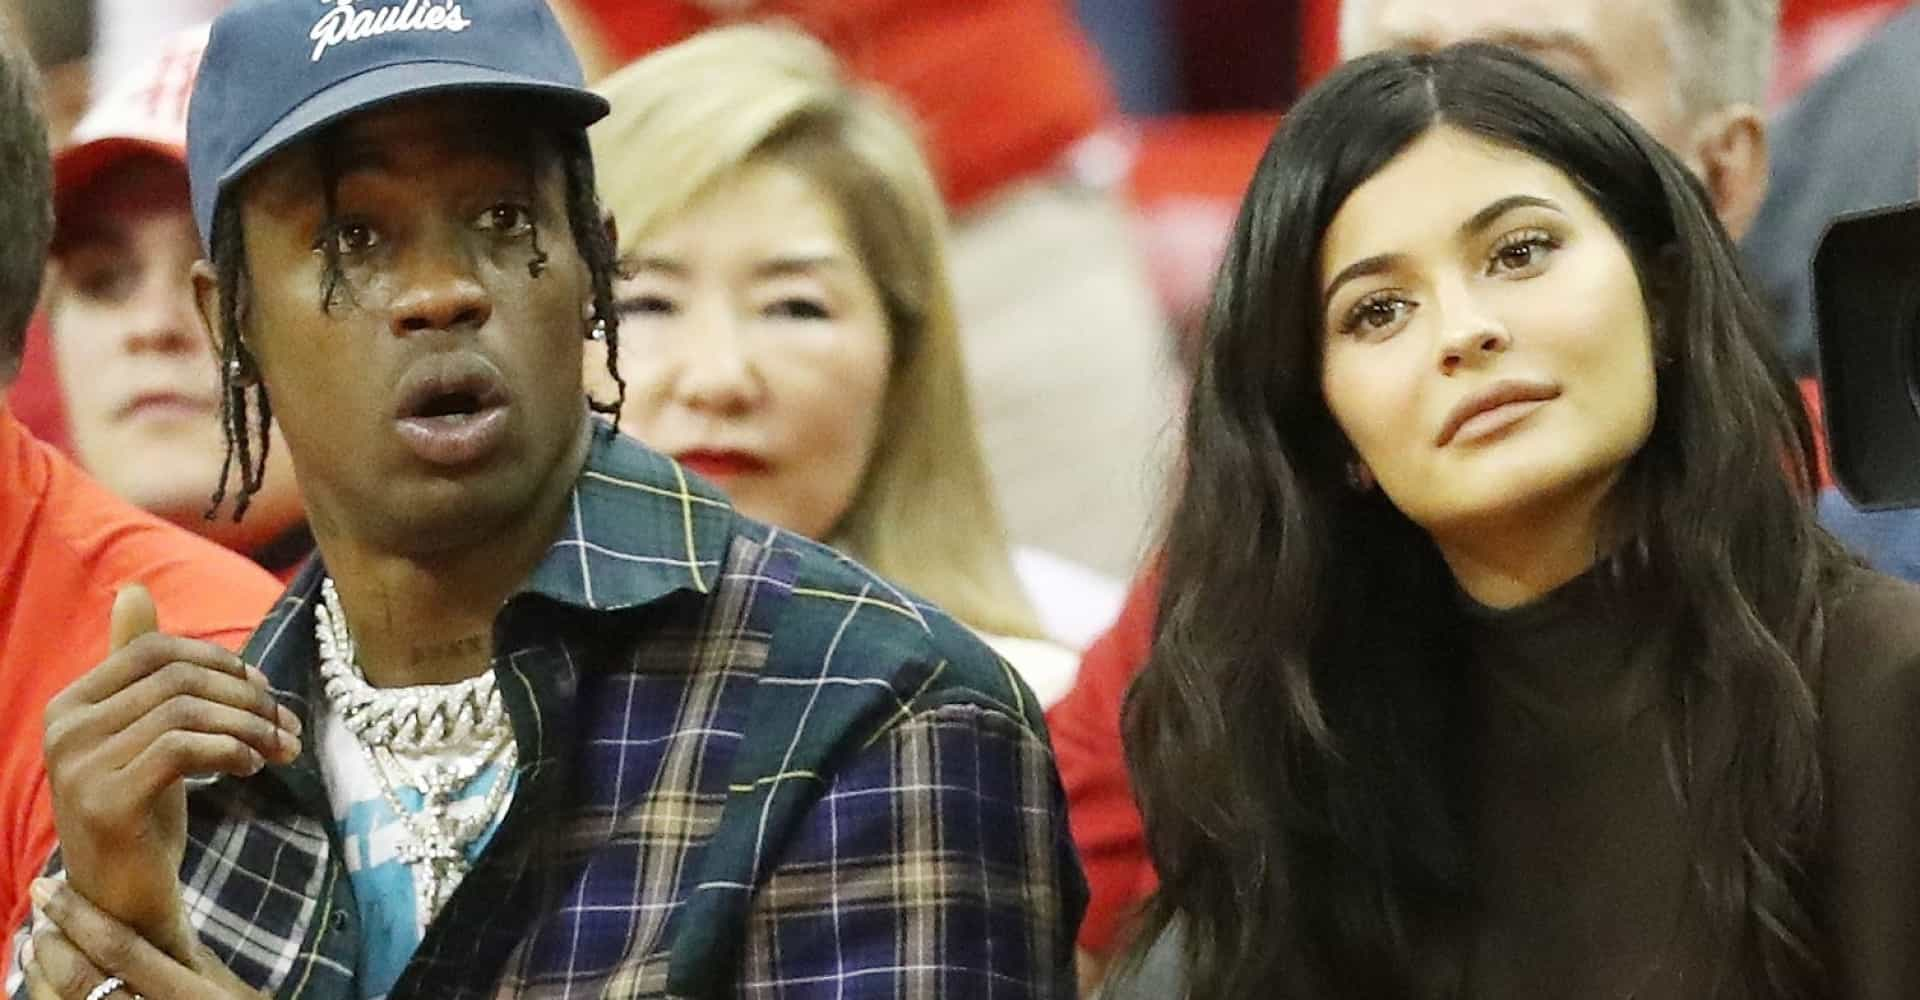 Travis Scott's alleged cheating photo was staged!